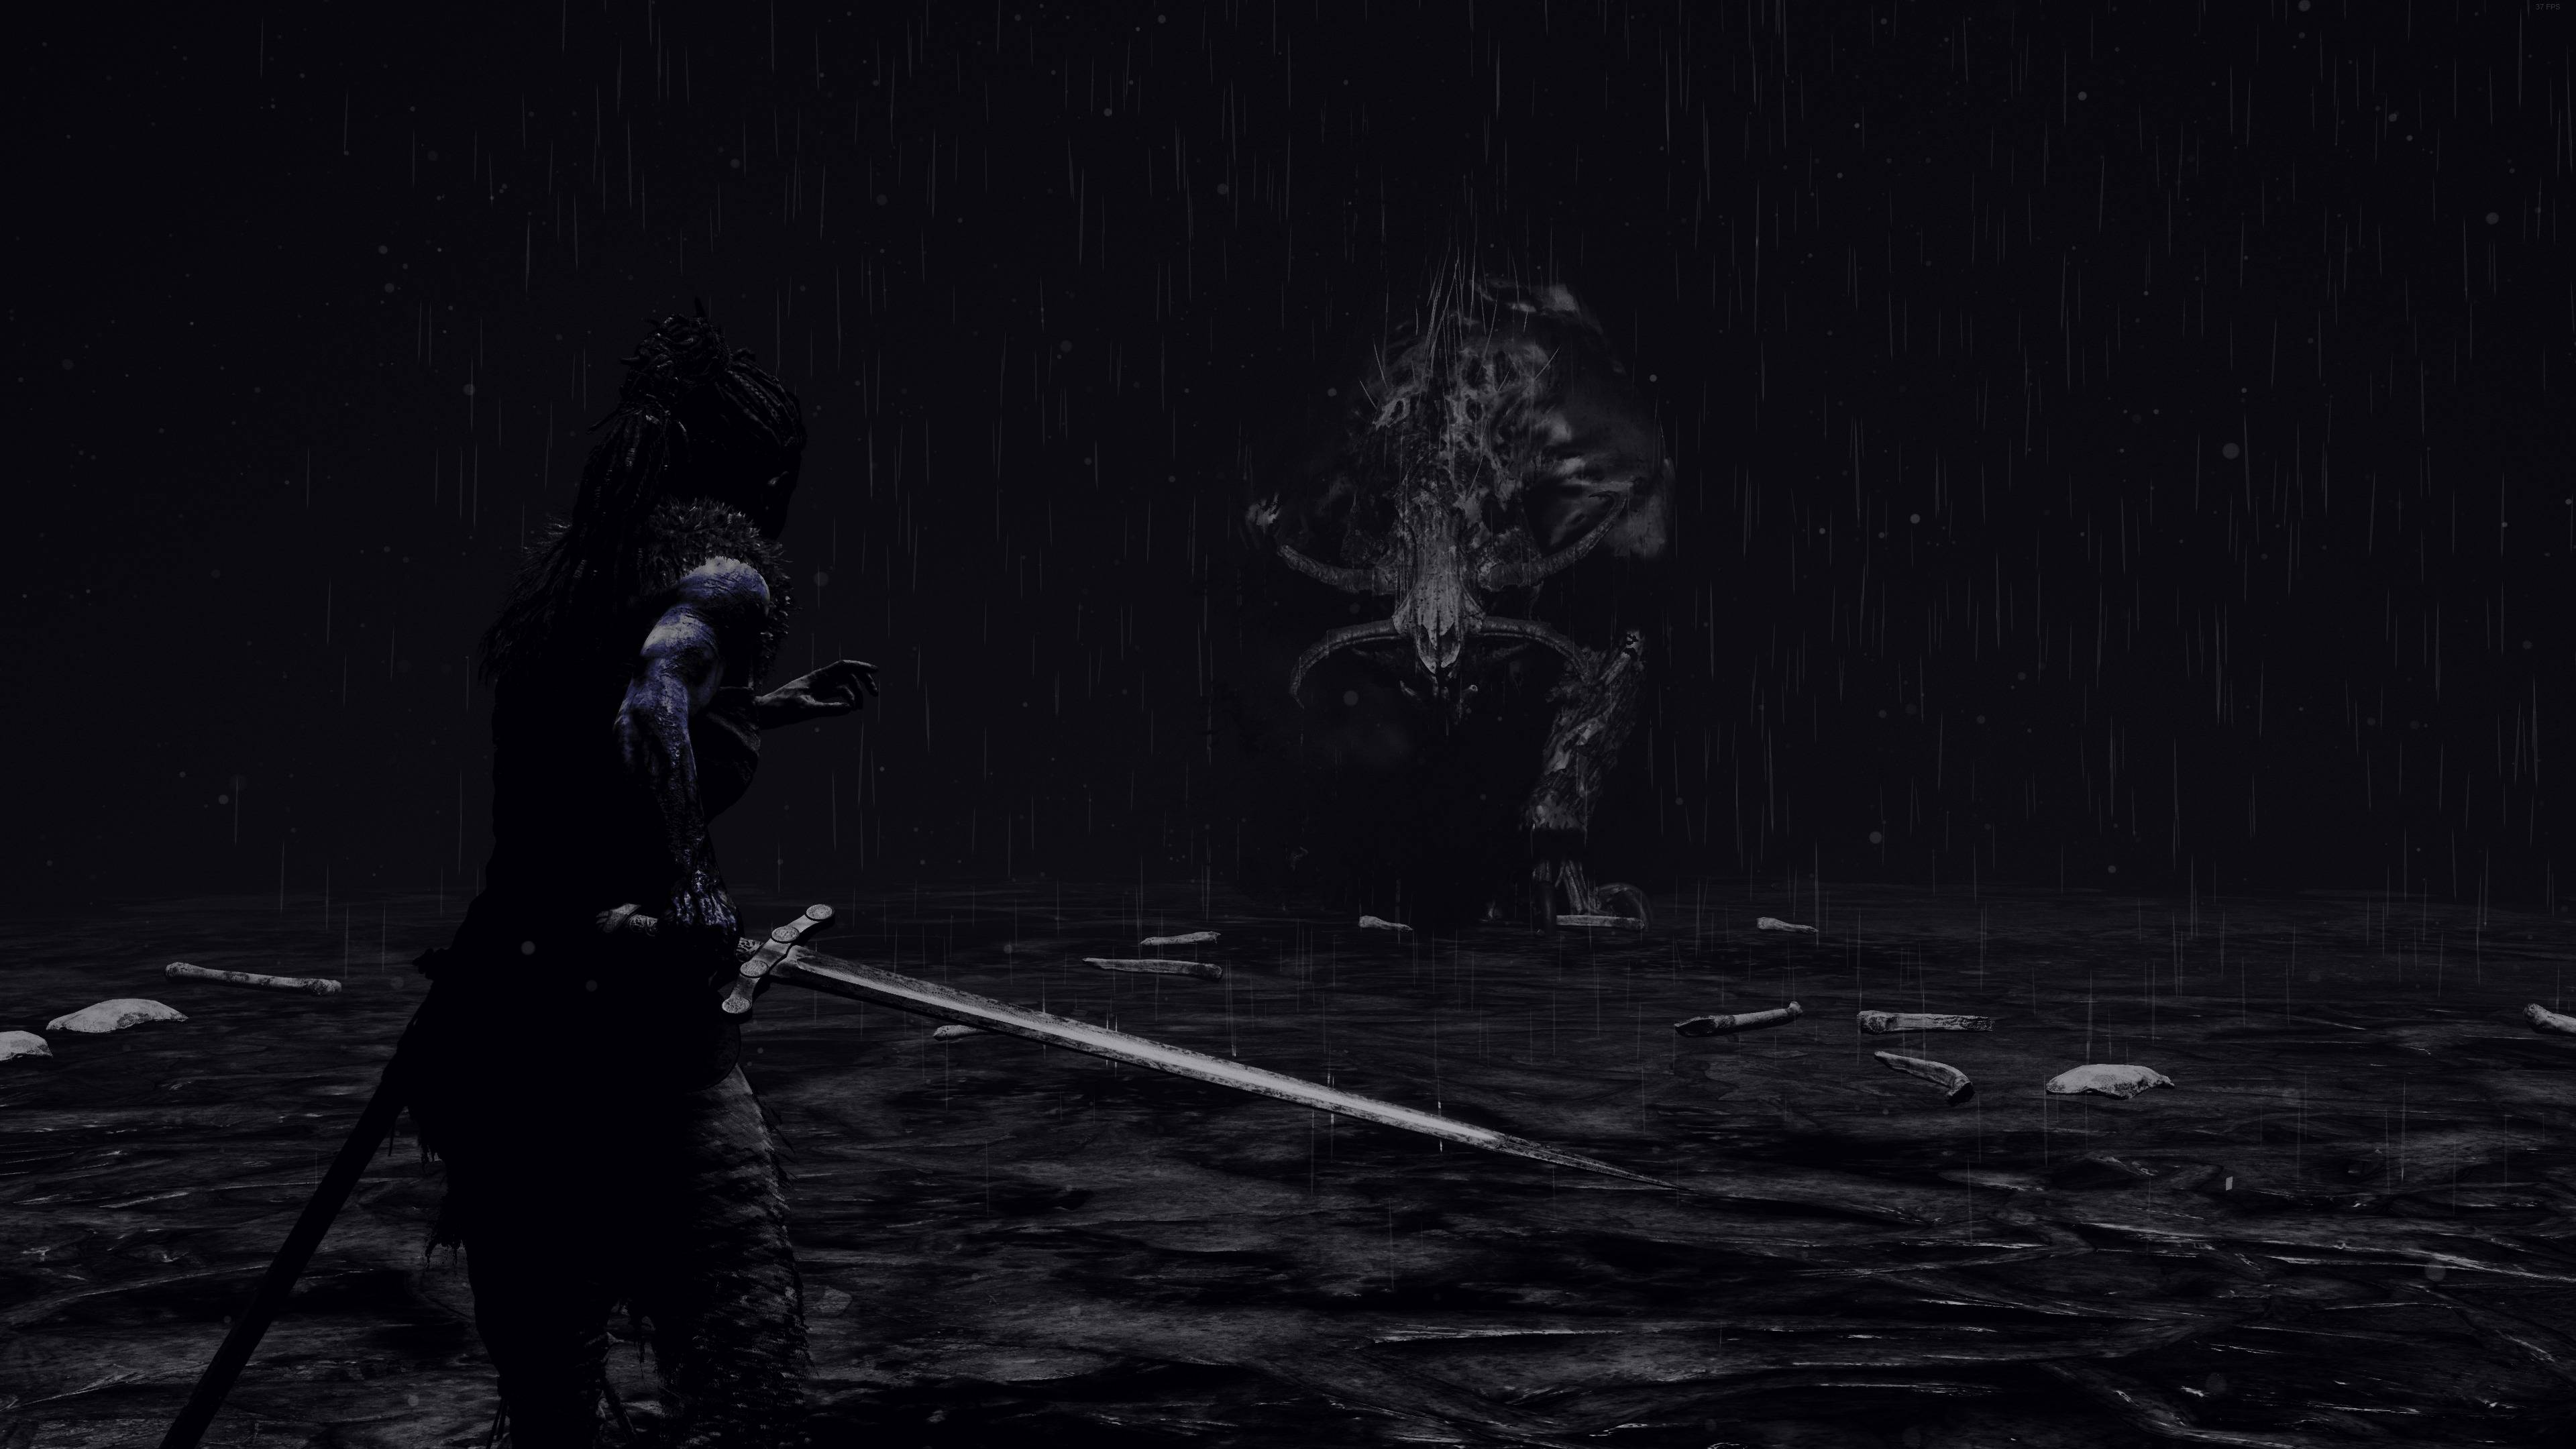 Download Hellblade Senua's Sacrifice Game 540x960 Resolution, HD 4K